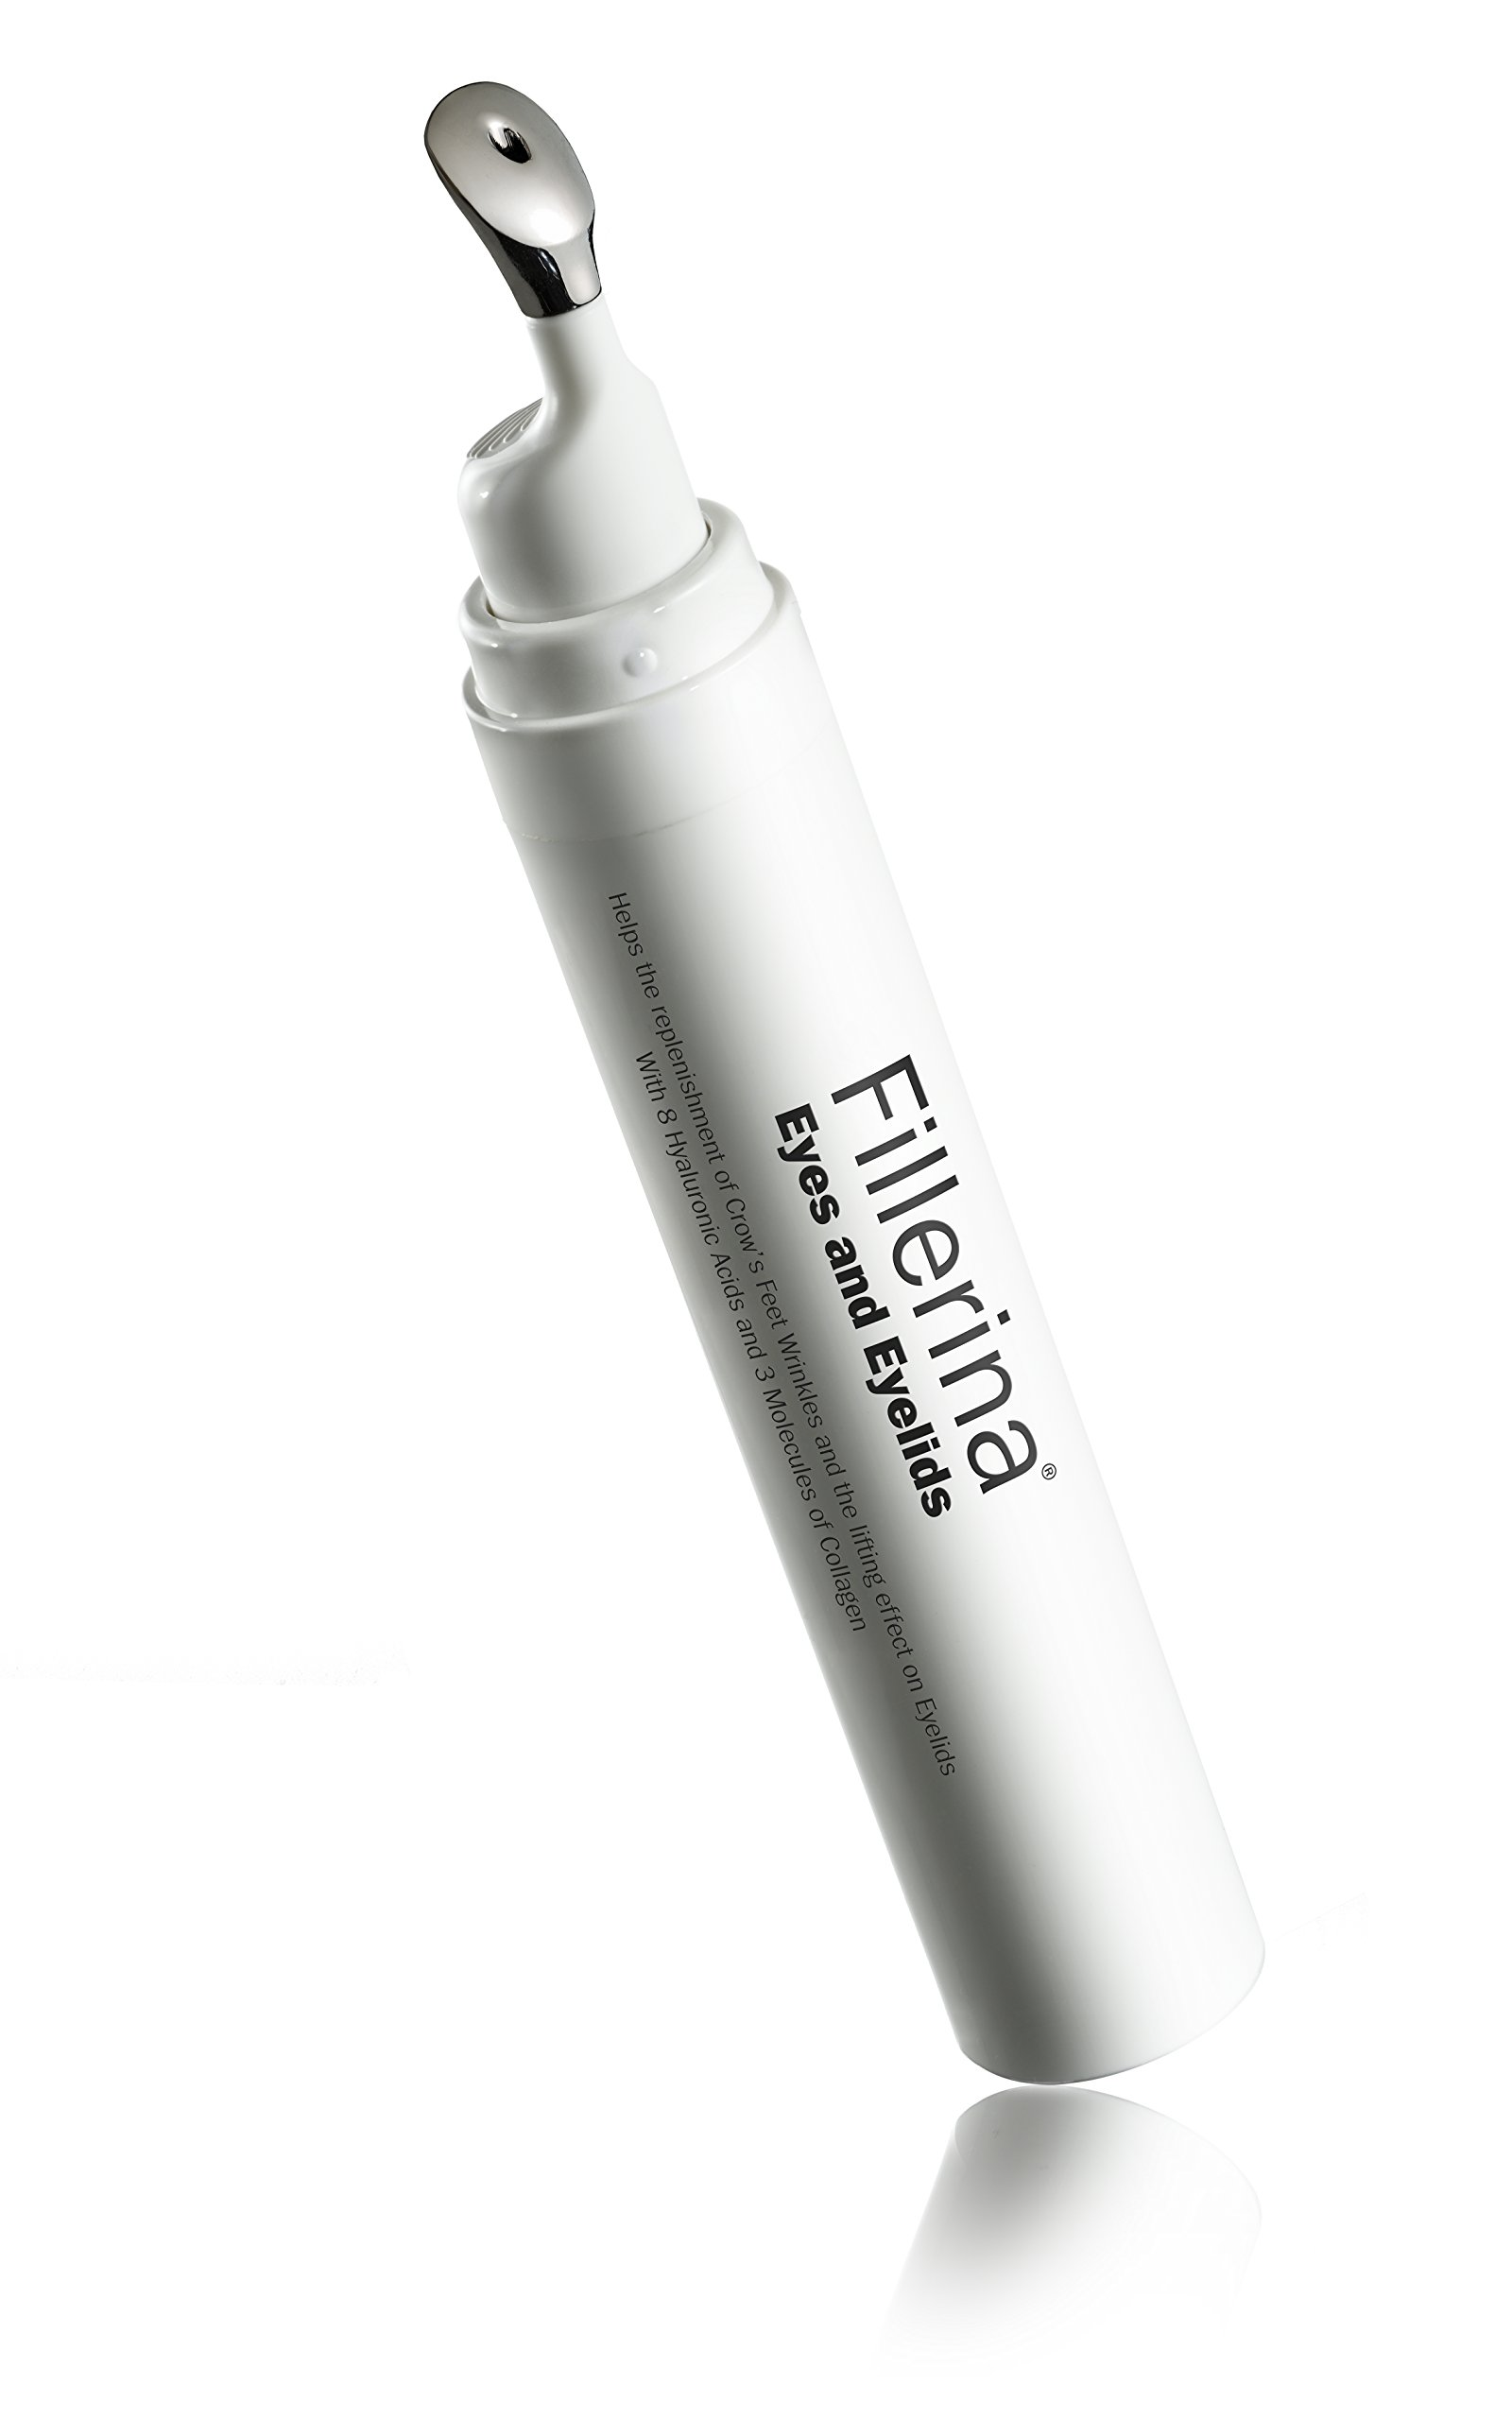 Fillerina Specific Zone Eyes and Eyelids-Eye Treatment With Hyaluronic Acid (Grade 5) by Fillerina